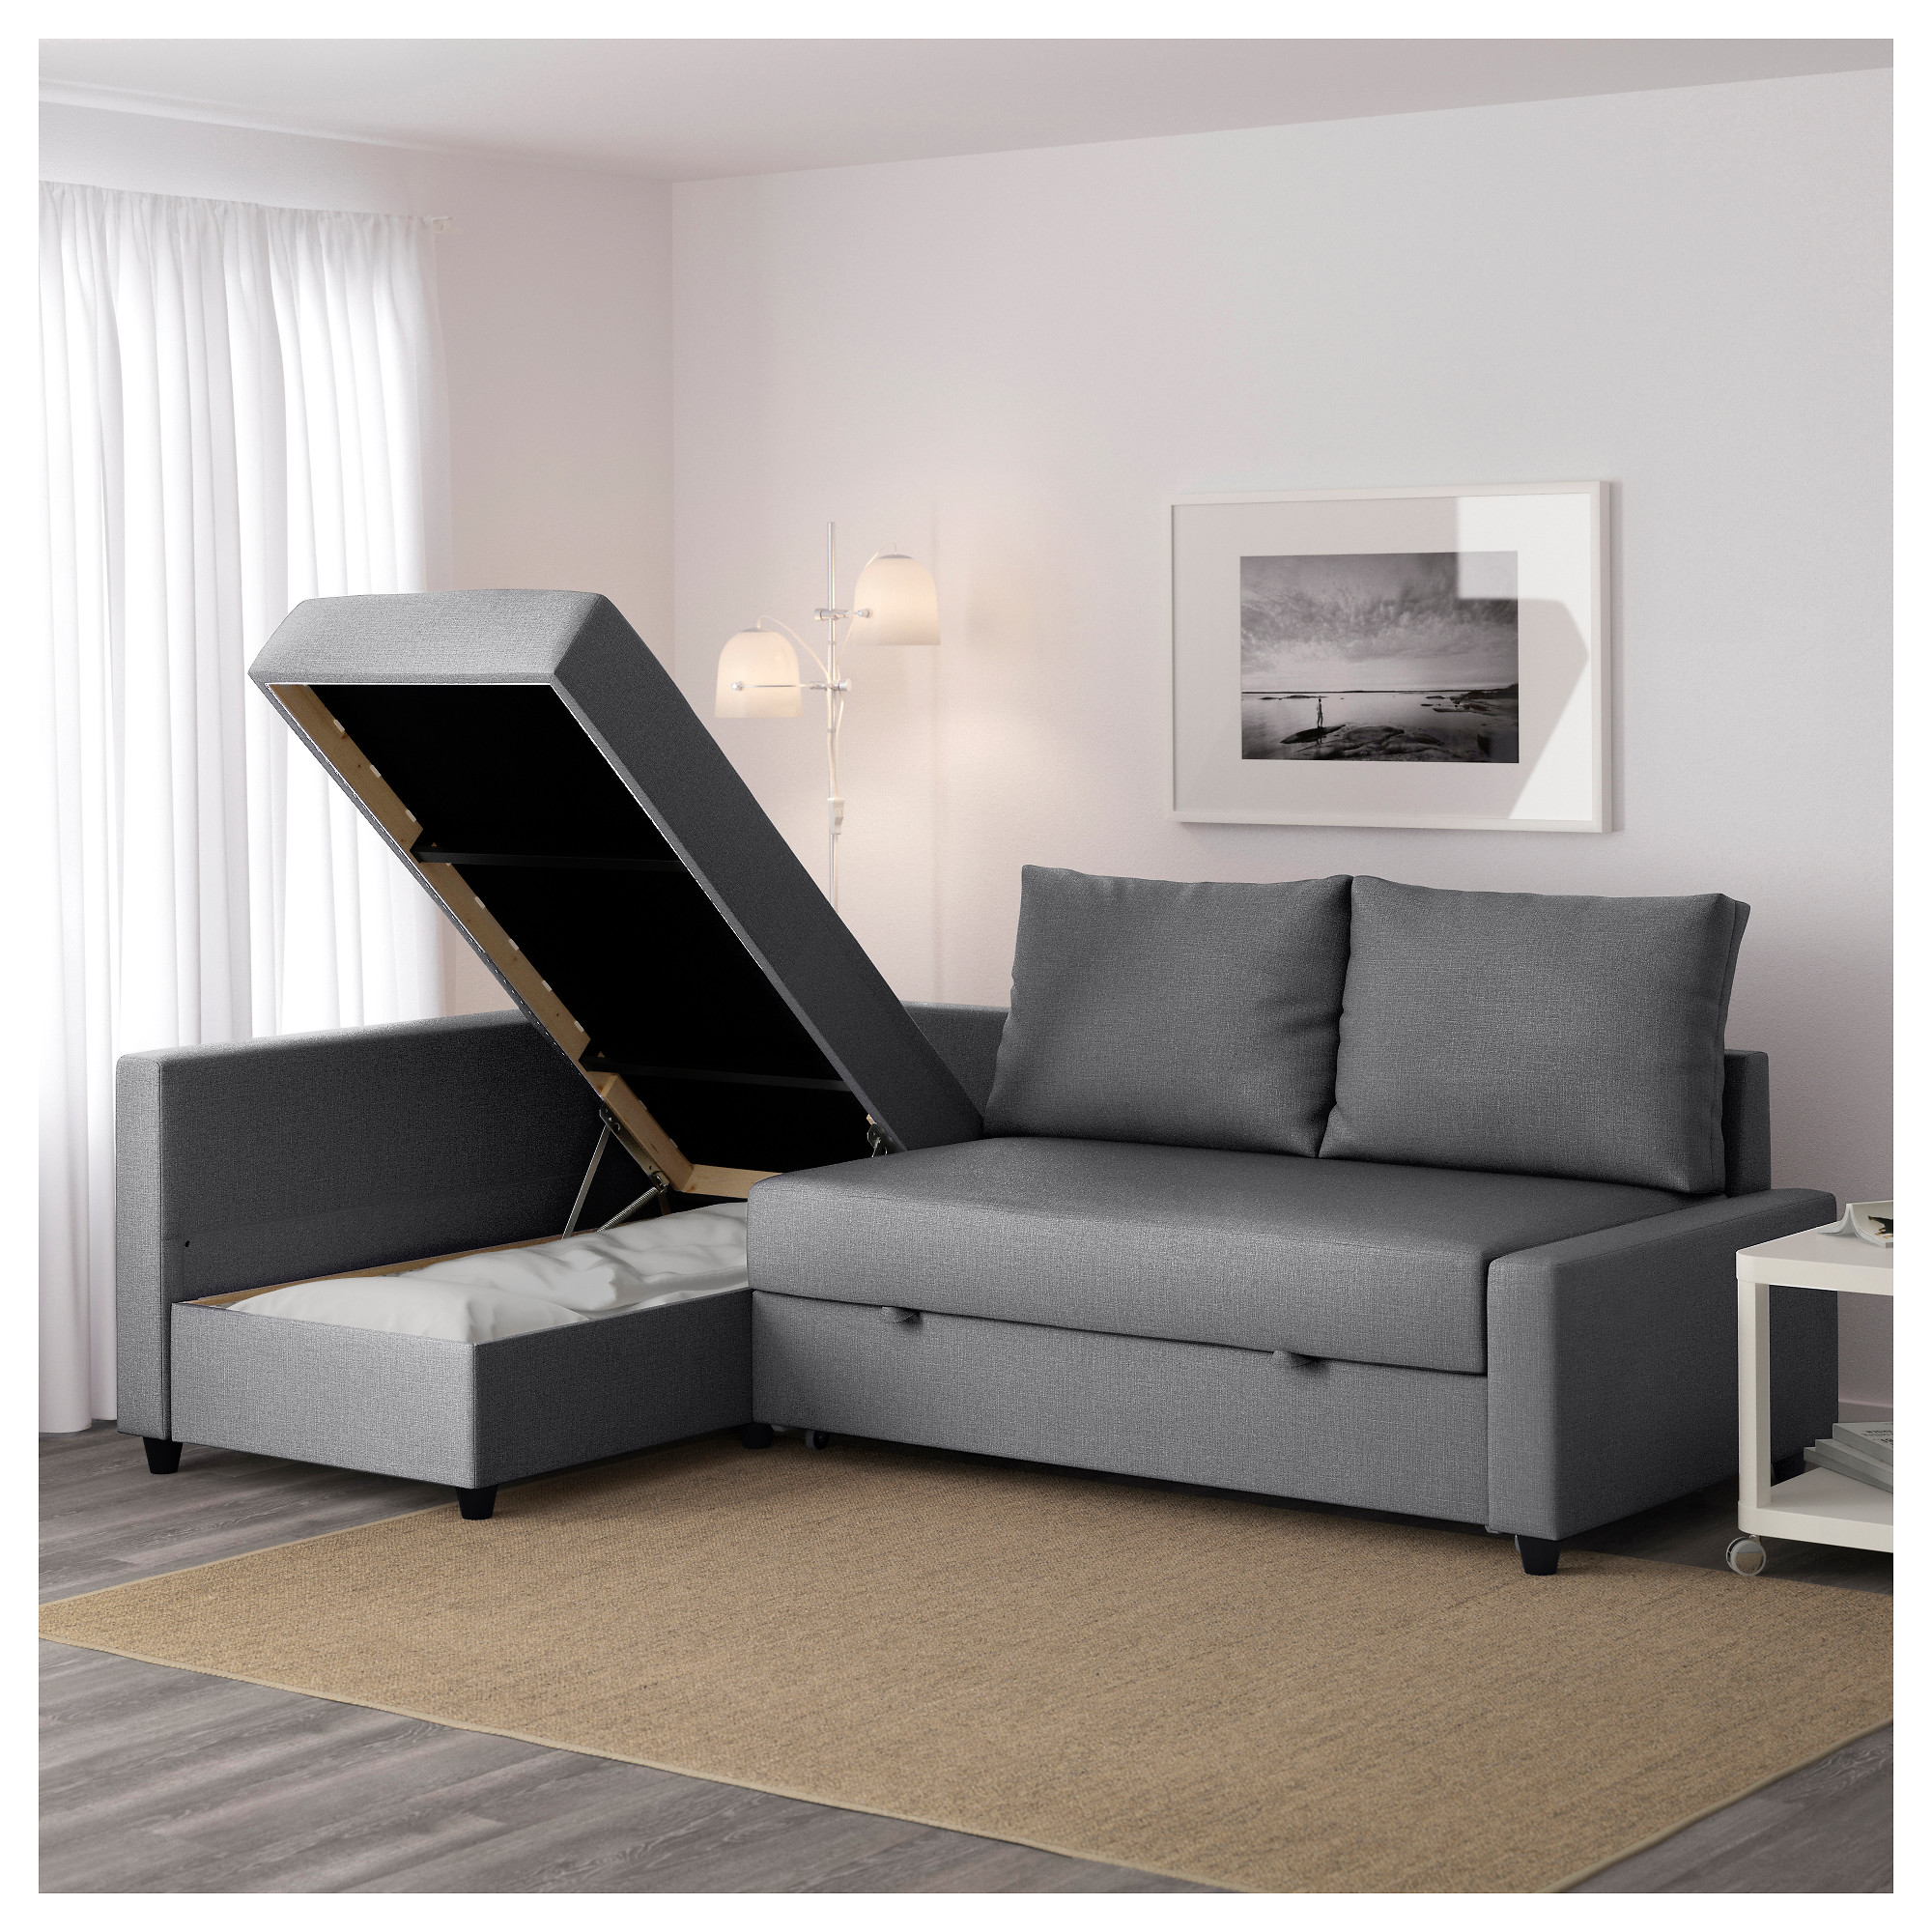 size design pulaski leather chaise gray microfiber full sleeper of sleepera inspirations images sensational with sofa chaiseikea newton center sofas interior